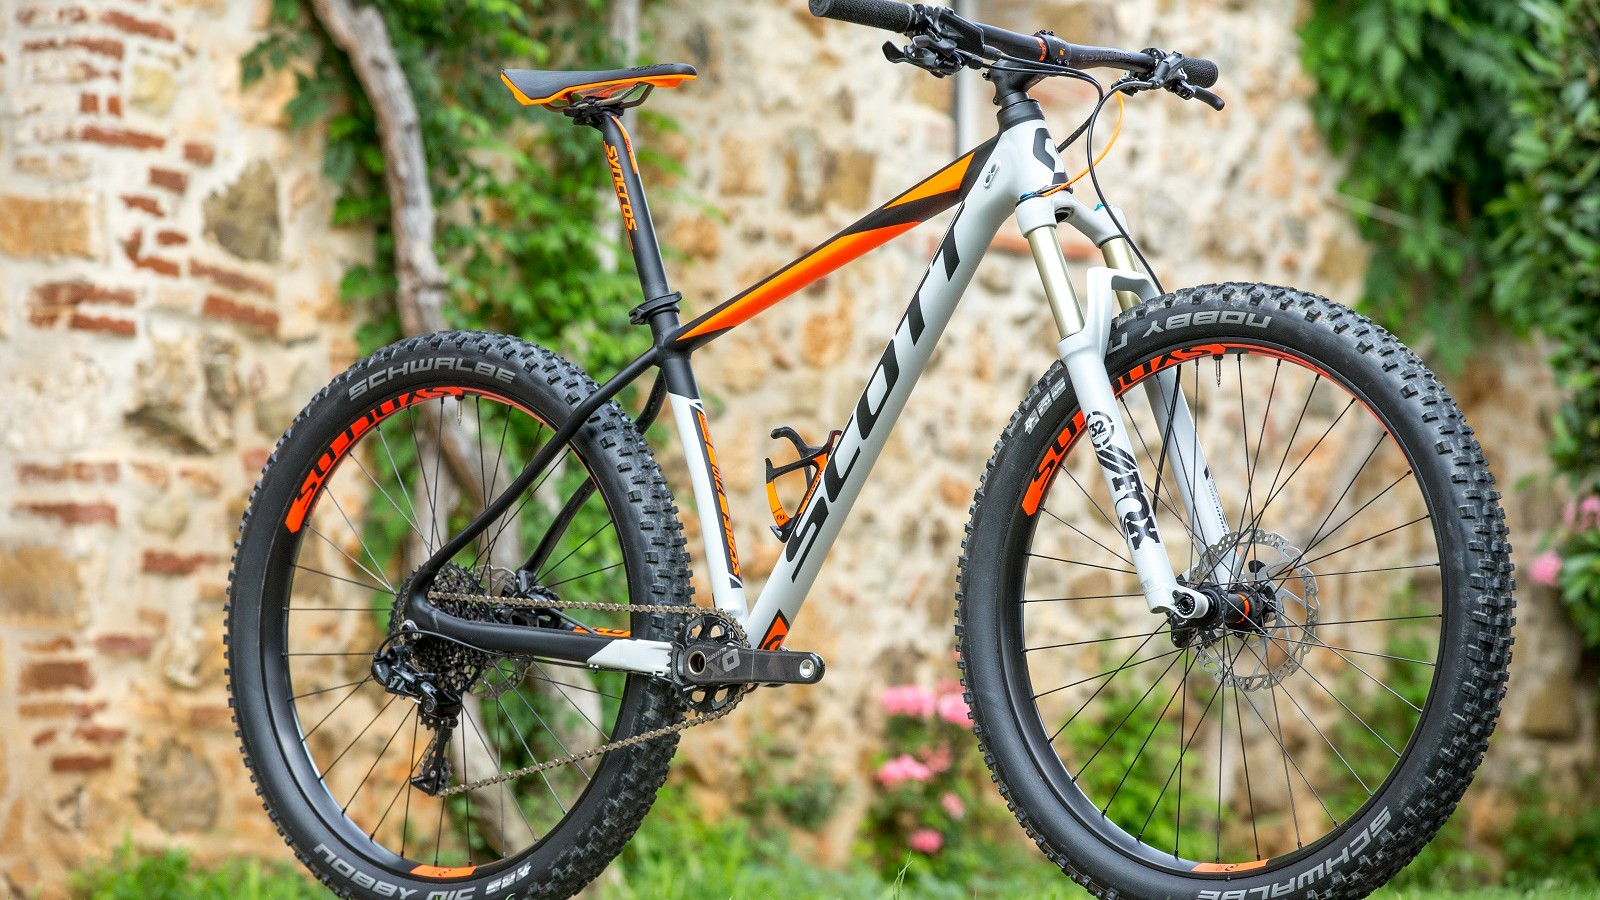 Scott's Scale 710 Plus bike is more trail orientated than its skinnier tyre Scale counterparts, boasting a slacker head angle and 2.8in tyres